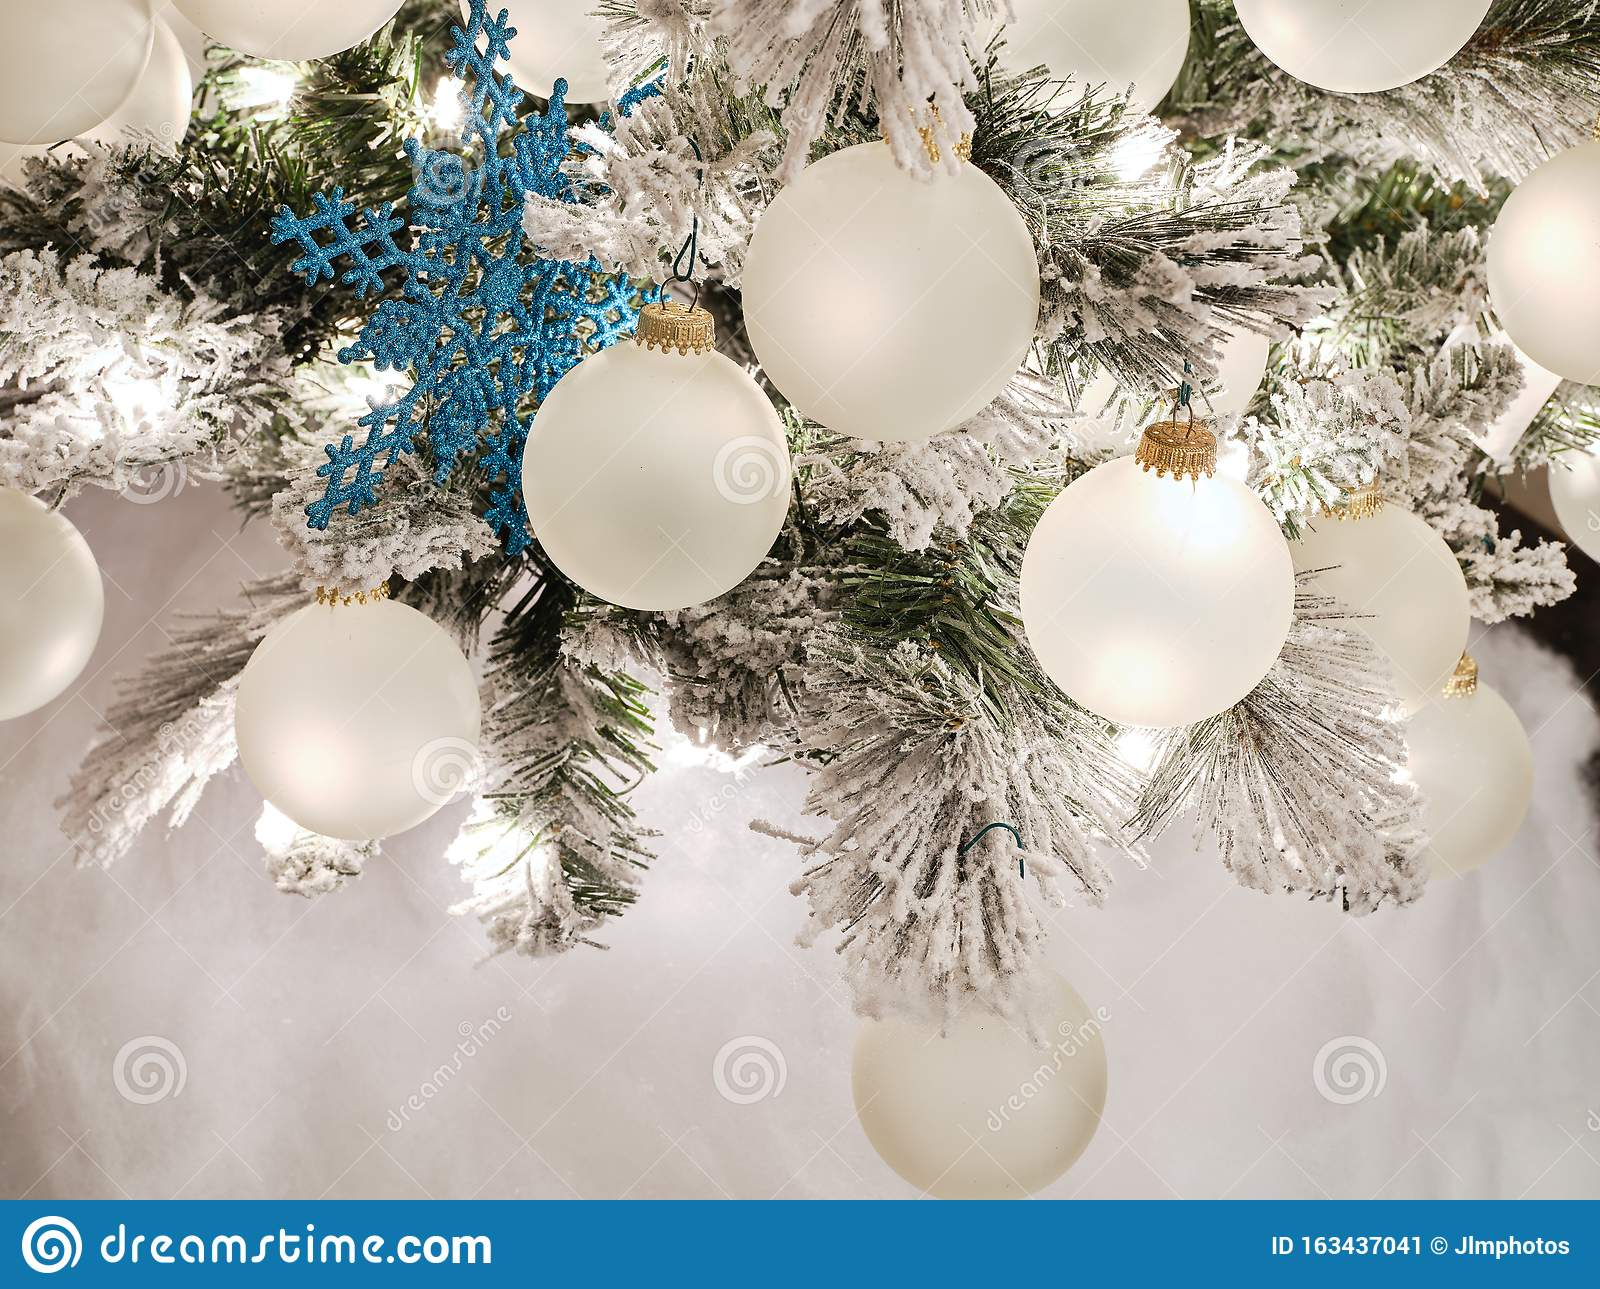 Tree with blue and white ornaments decorated for the thanksgiving and christmas holidays